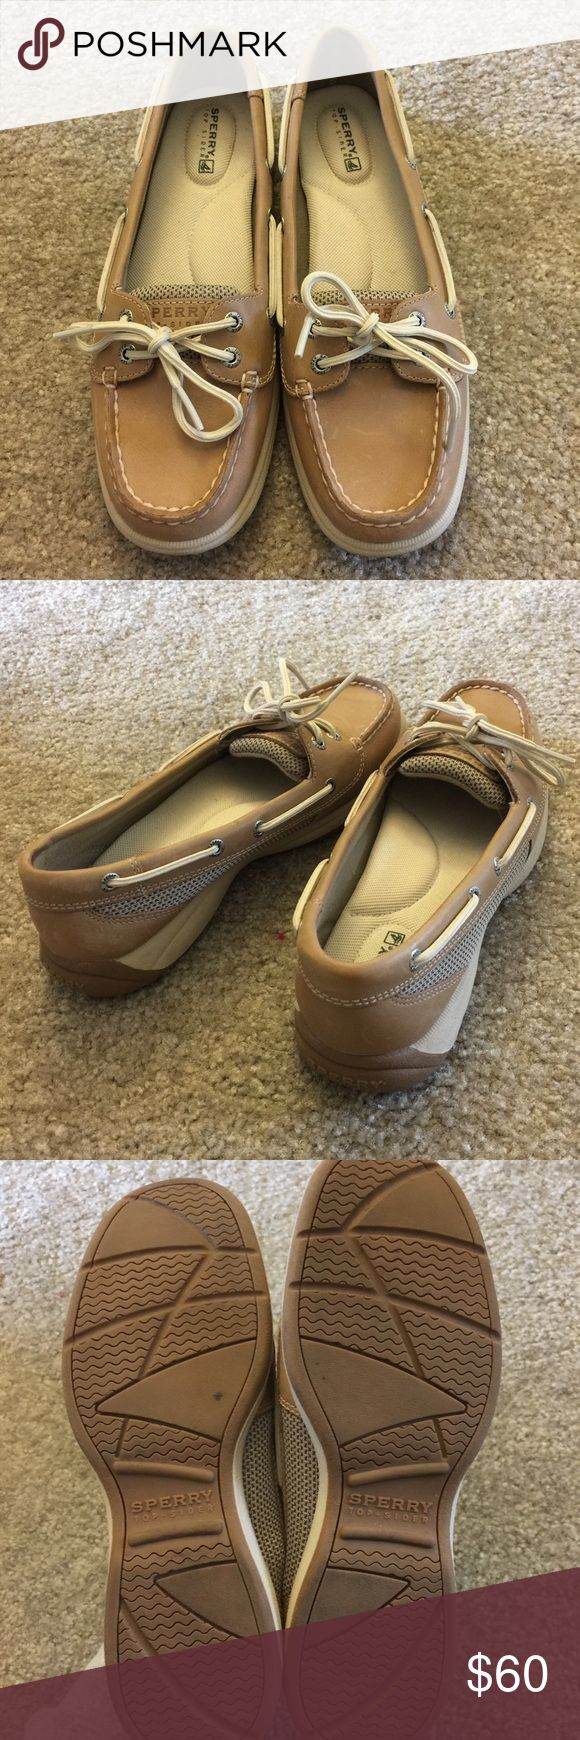 Sperry angelfish style boat shoes, like new! Cute Sperry brand angelfish style boat shoes, women's style. Only been worn once otherwise brand new, great condition! Sperry Shoes Flats & Loafers